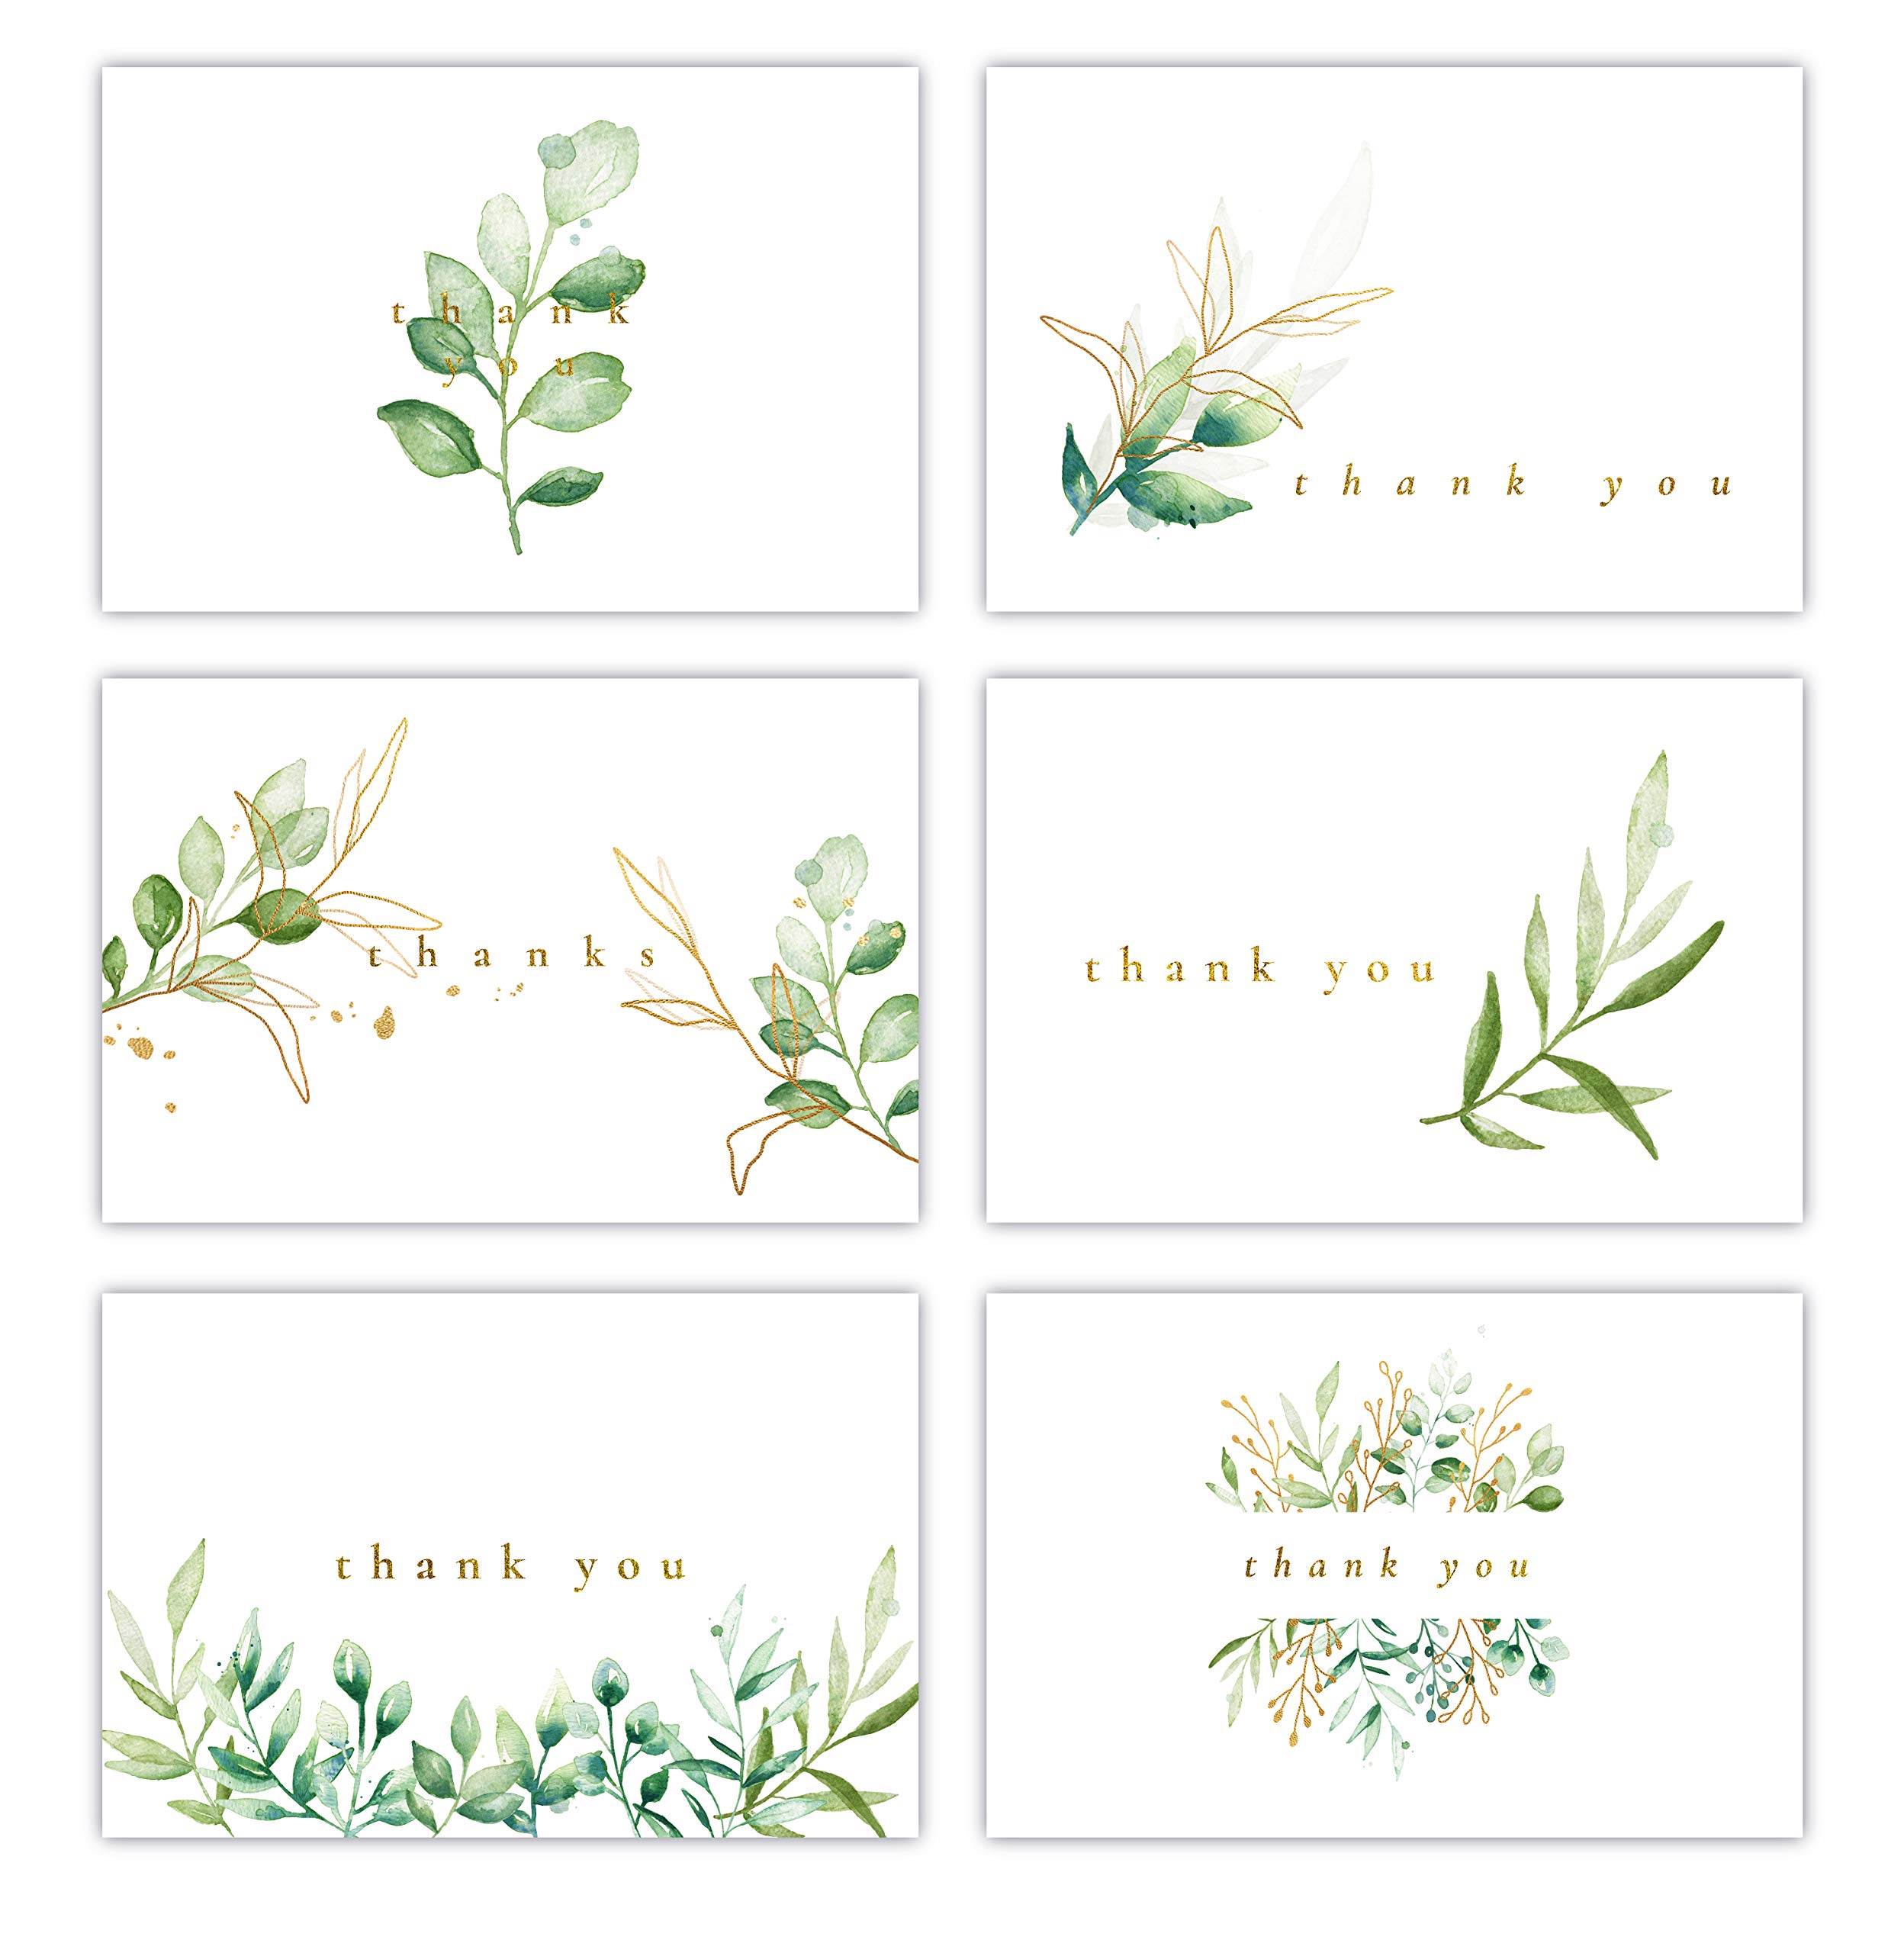 Gooji 4x6 Golden Greenery Thank You Cards (Bulk 36-Pack) Matching Peel-and-Seal White Envelopes   Assorted Set, Watercolor, Colorful Graphics   Birthday Party, Baby Shower, Weddings